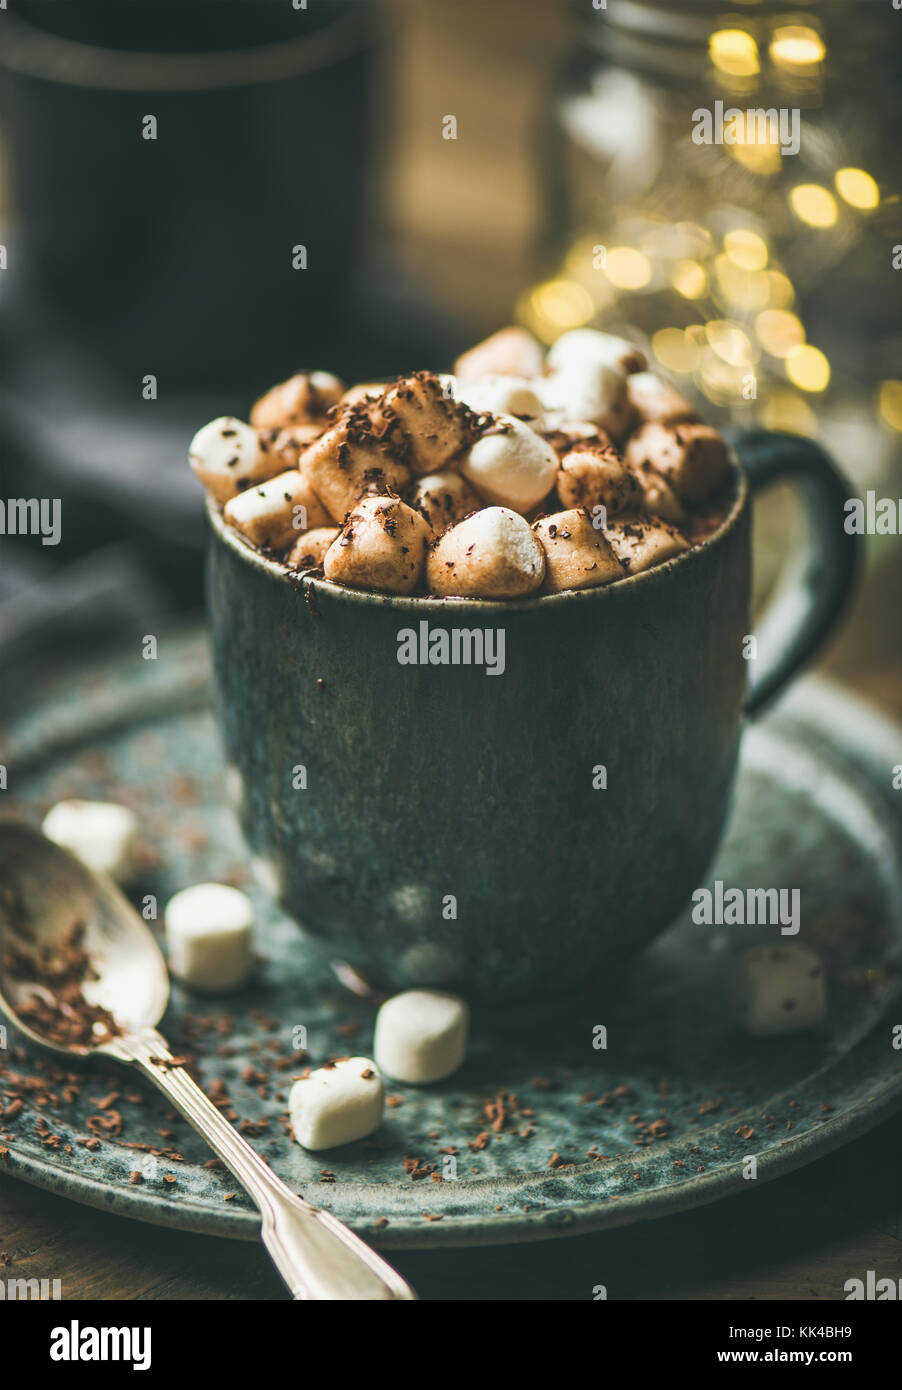 Winter warming sweet drink hot chocolate, Christmas lights behind - Stock Image